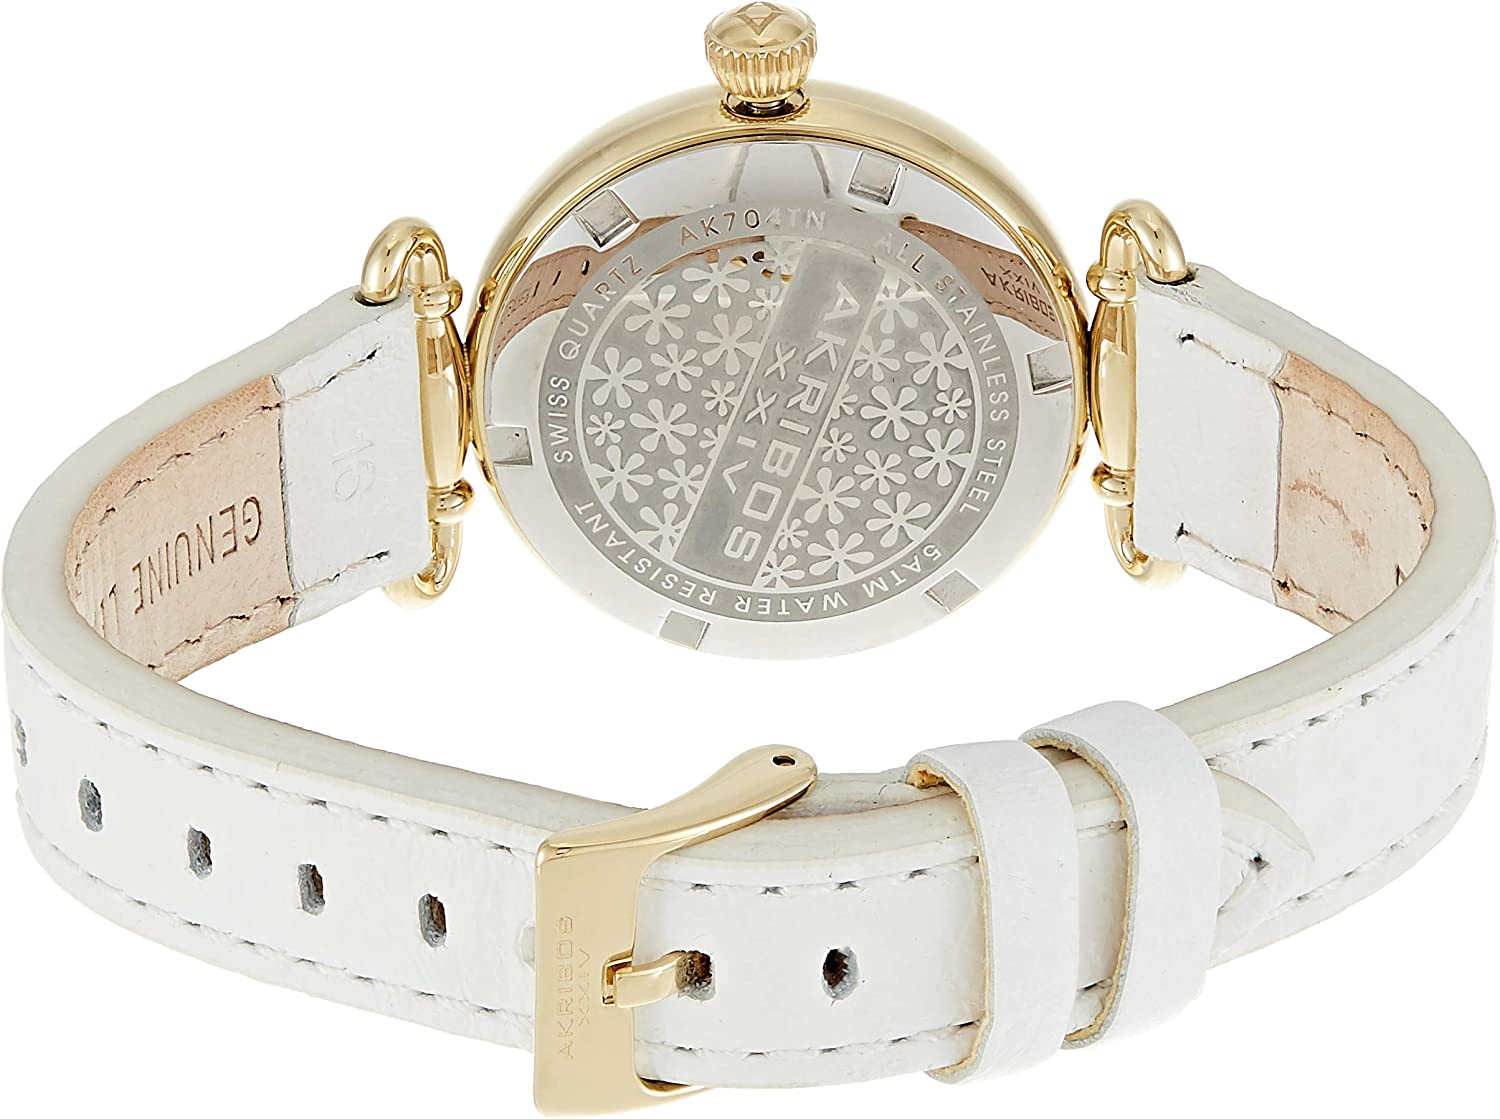 Akribos XXIV Women's 'Impeccable' Swiss Quartz Watch - Clear Arabic Numerals Hour Markers with Second Subdial On Genuine Leather Strap - AK704 White